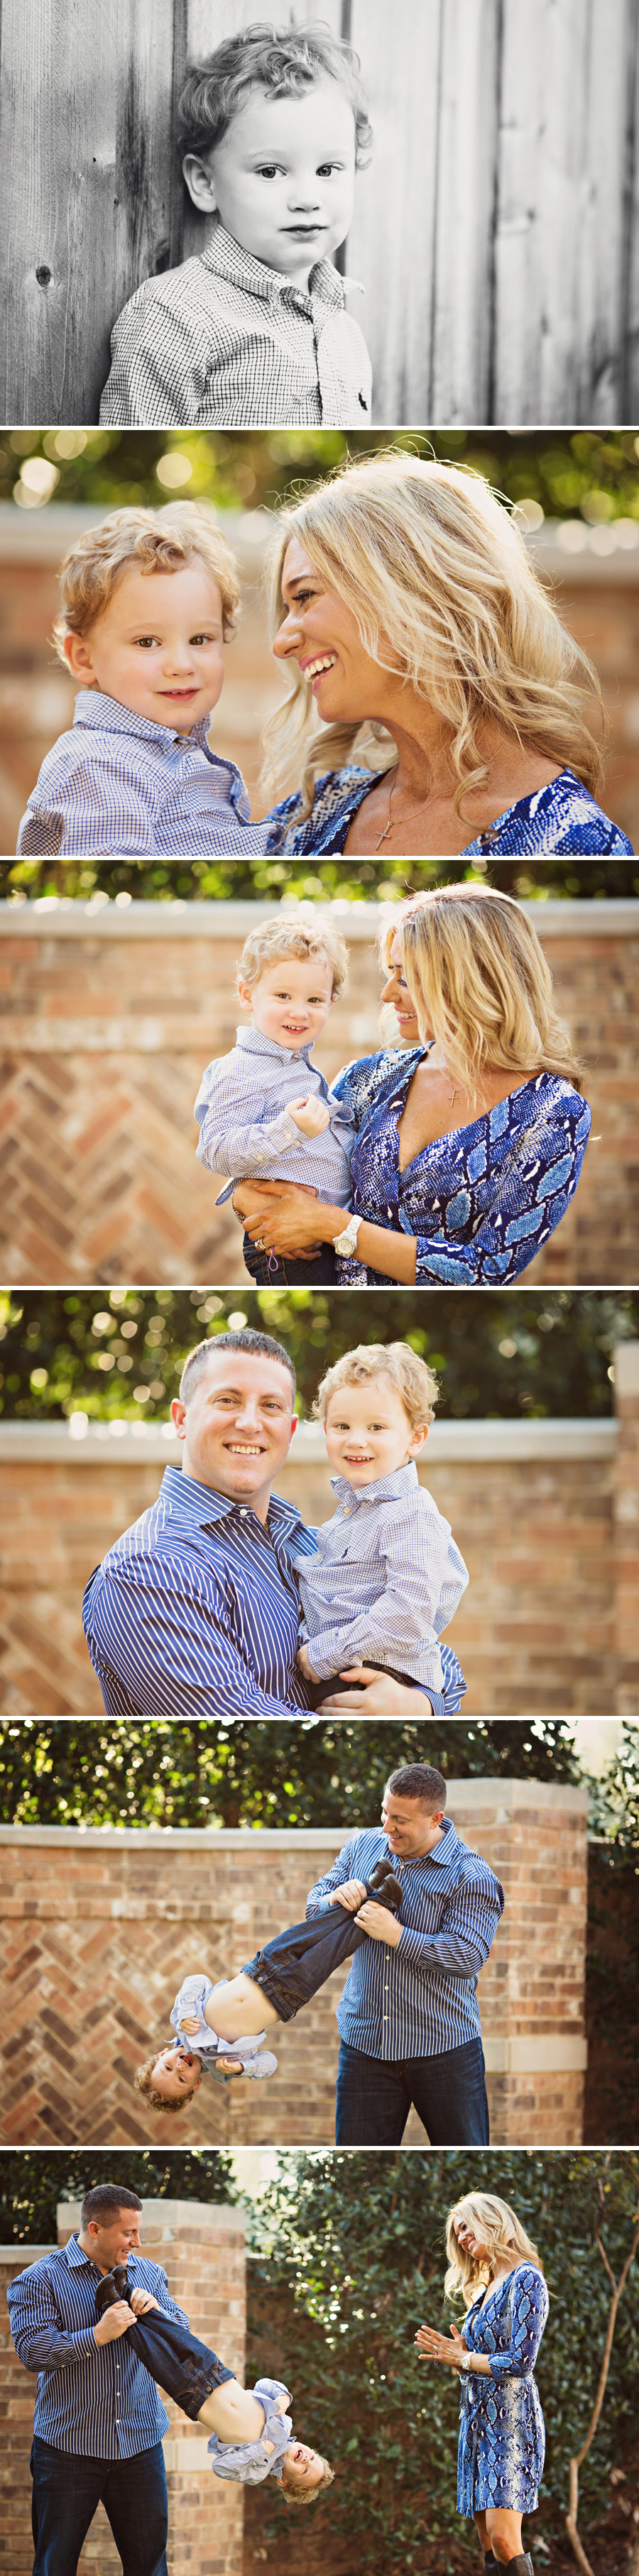 Dallas-Family-Photographercomp031